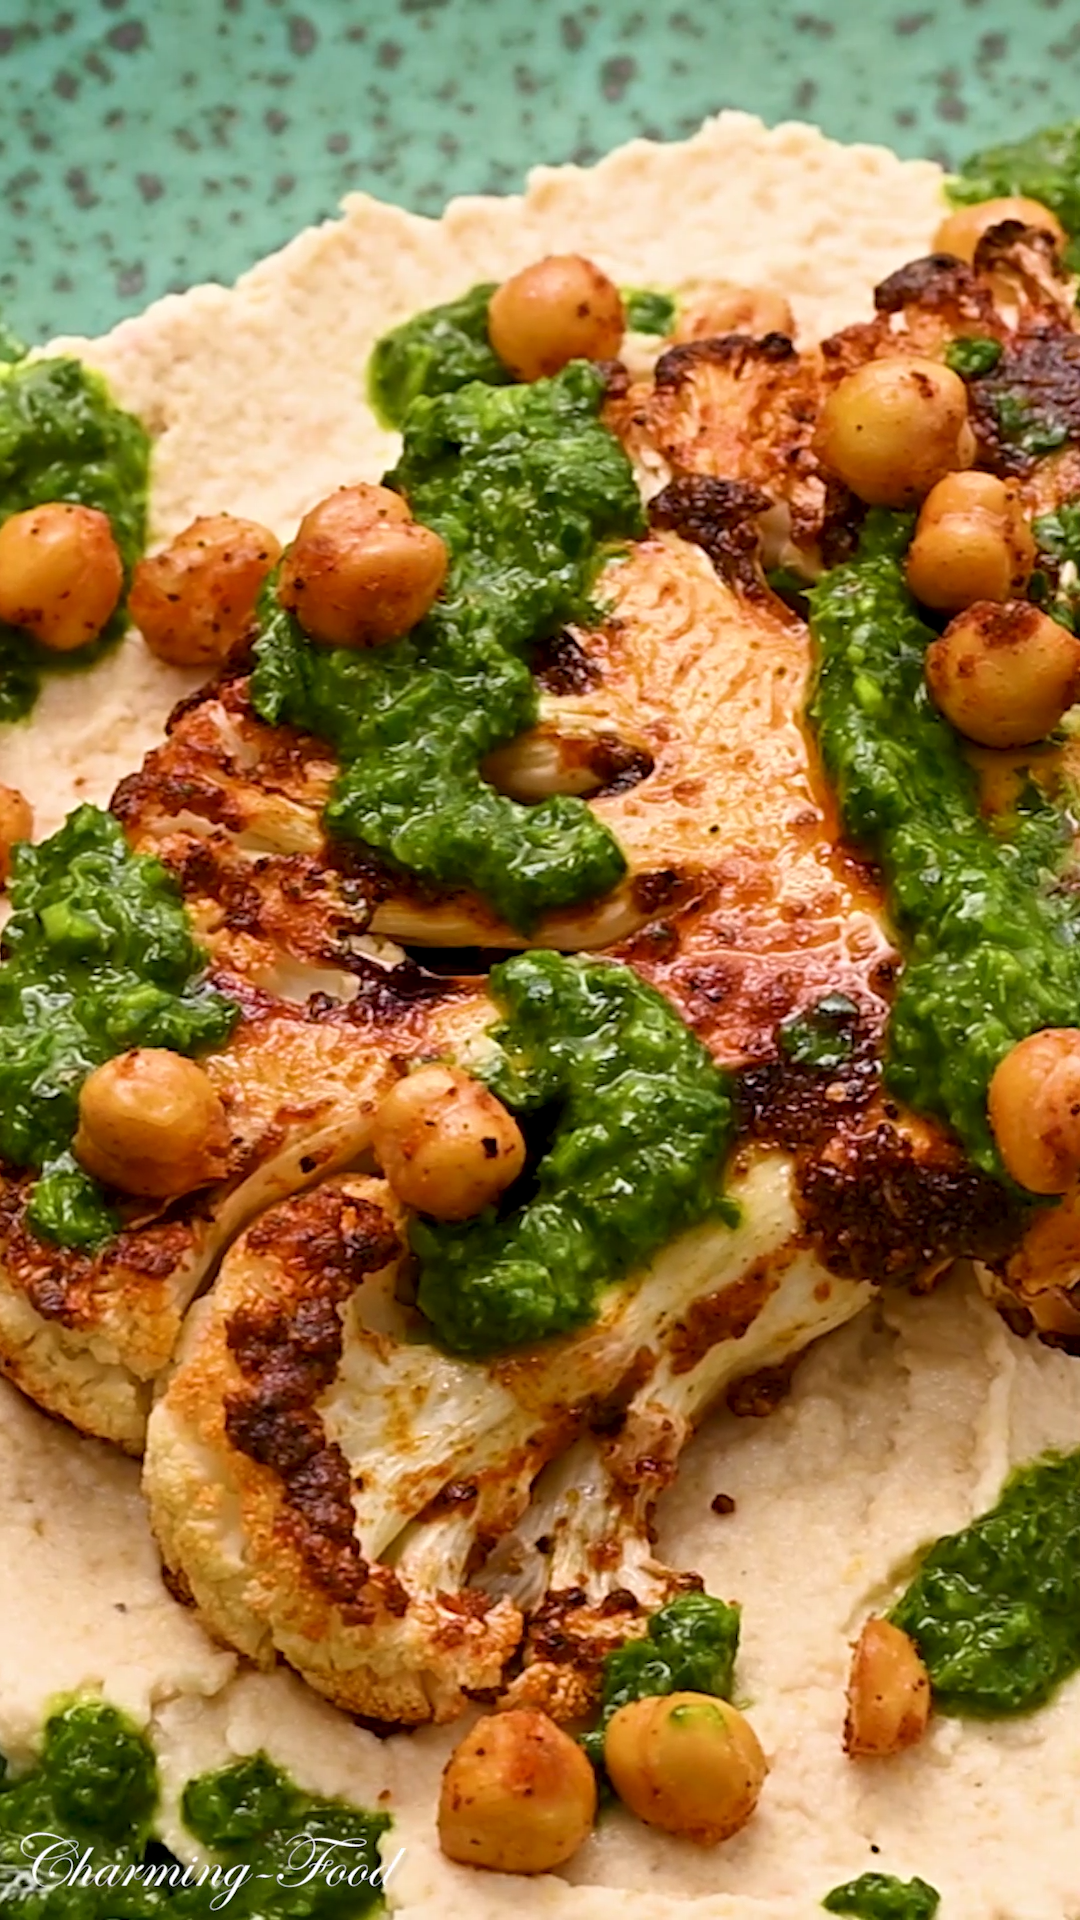 CAULIFLOWER STEAK WITH ROASTED CHICKPEAS AND CHIMI